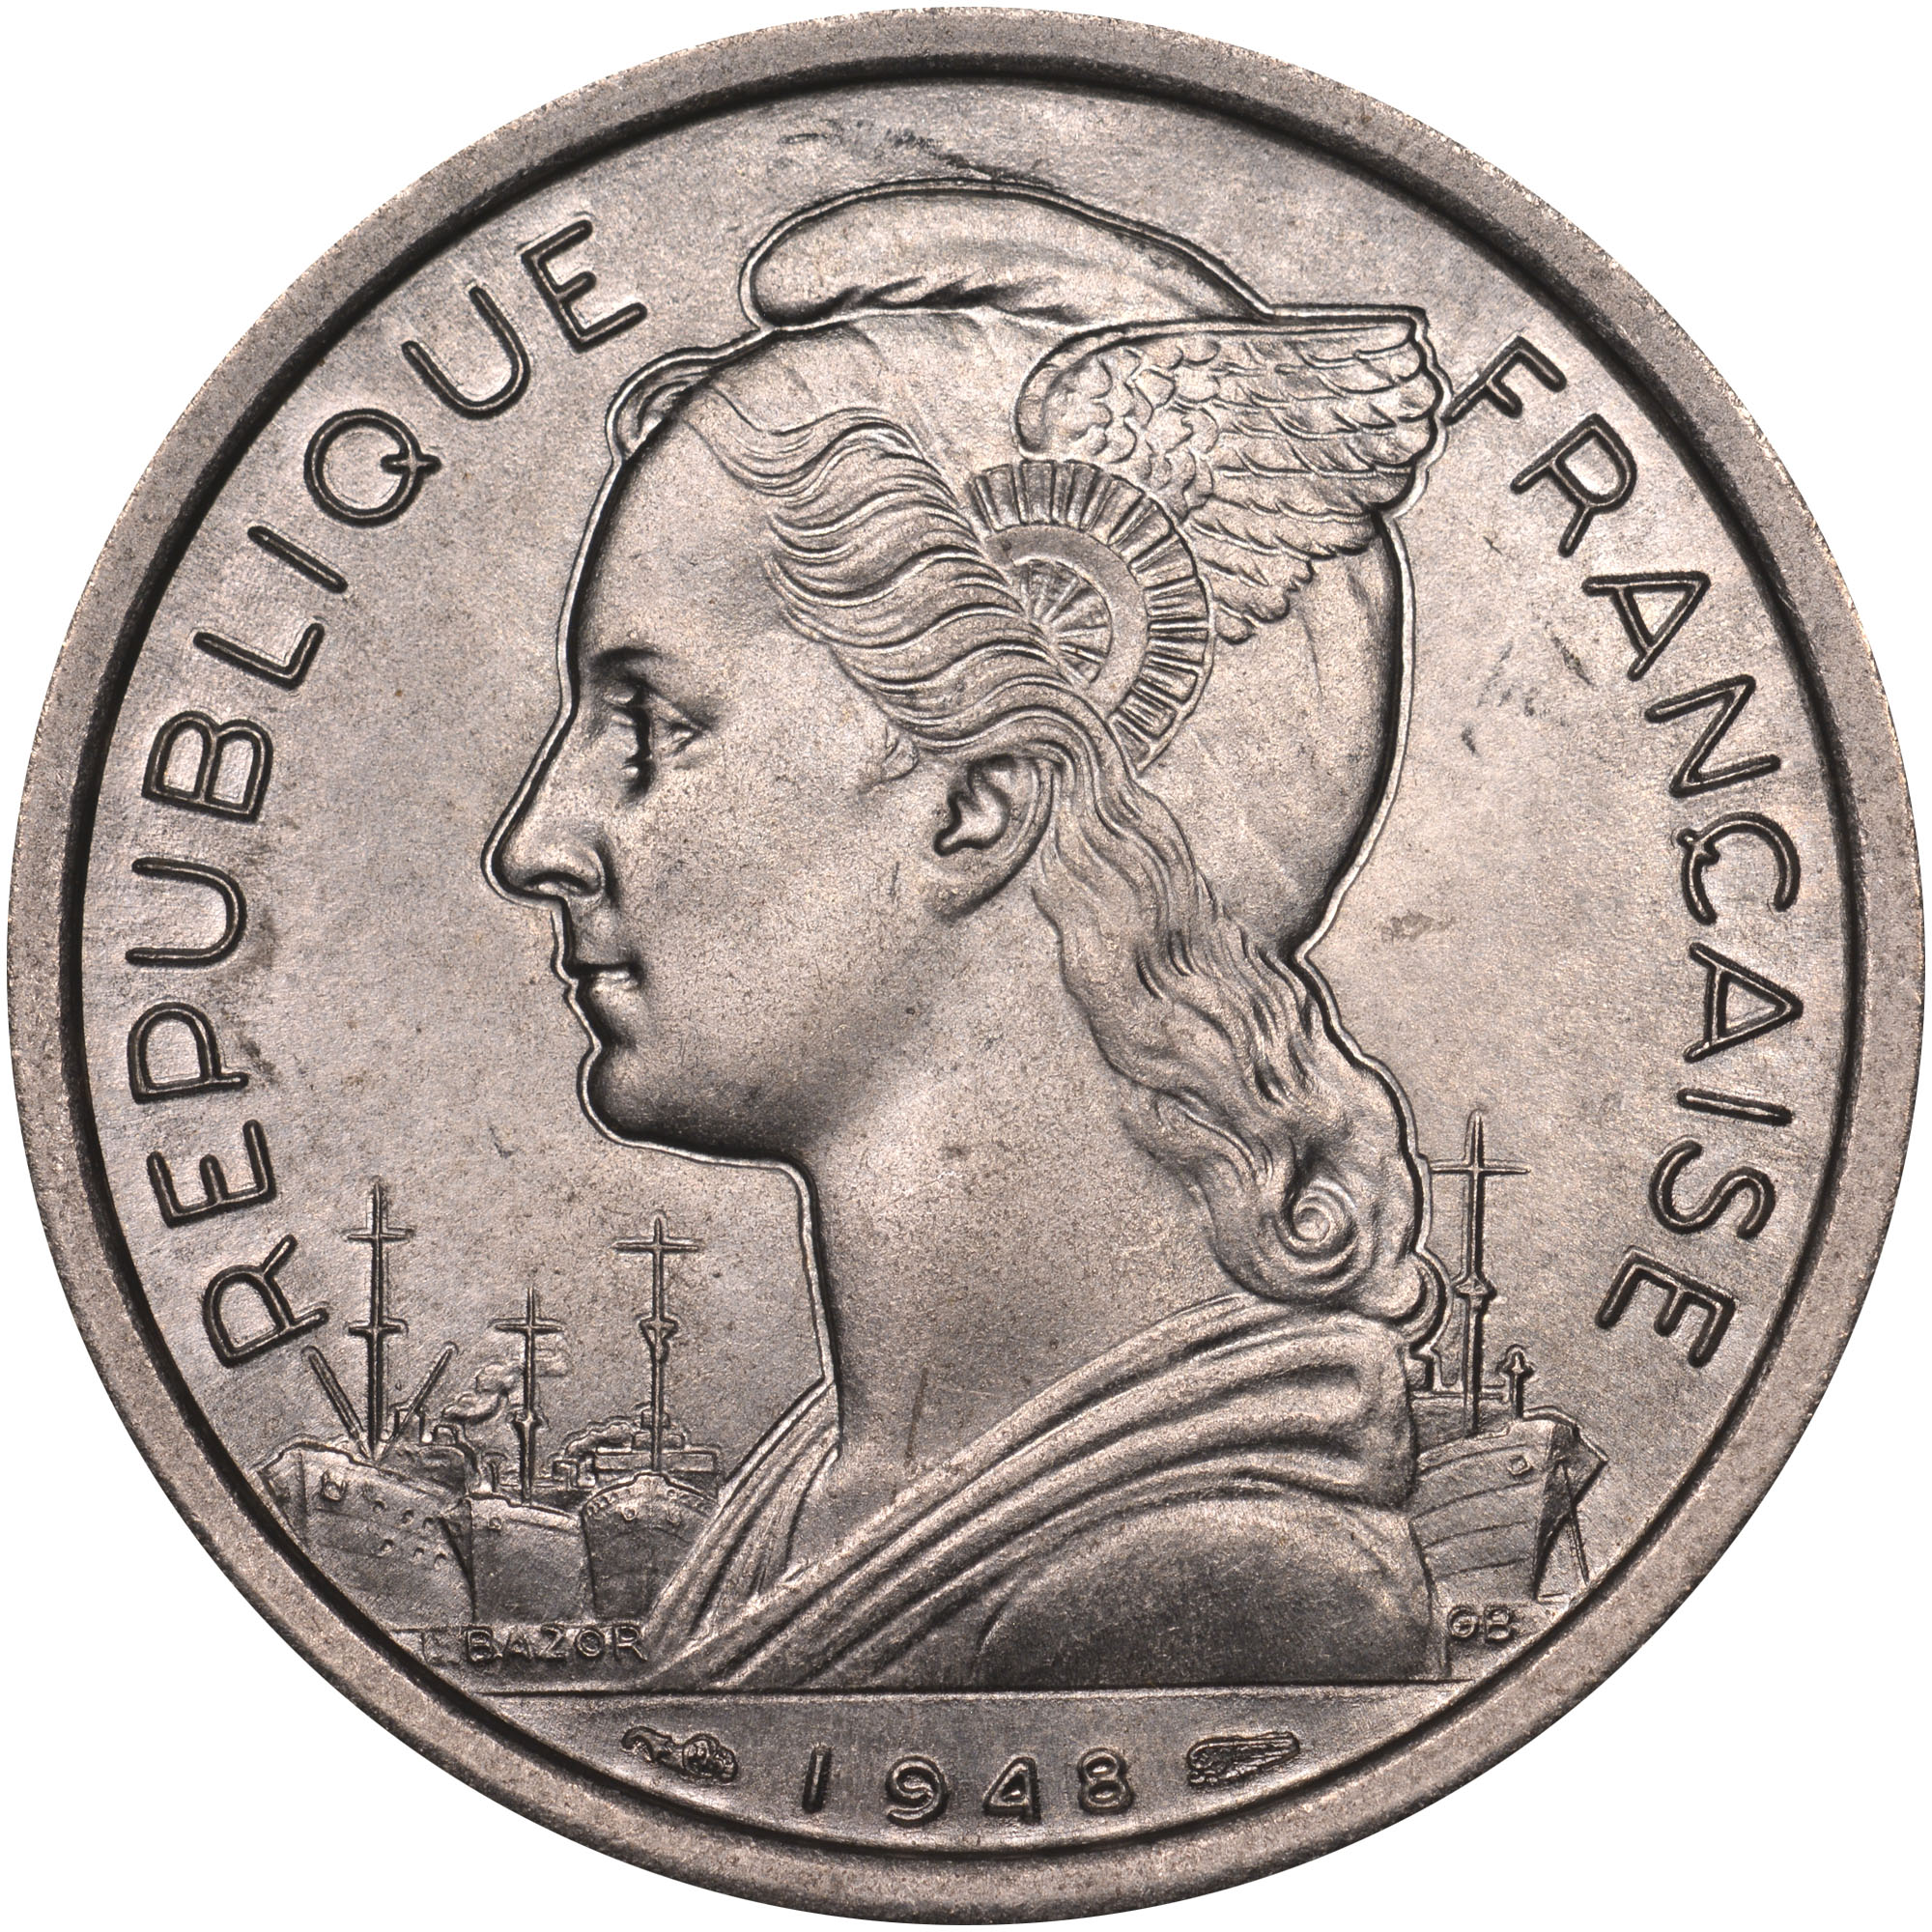 Old Reunion Islands Coin 1948 Reunion 2 Franc Vintage French Pacific Currency